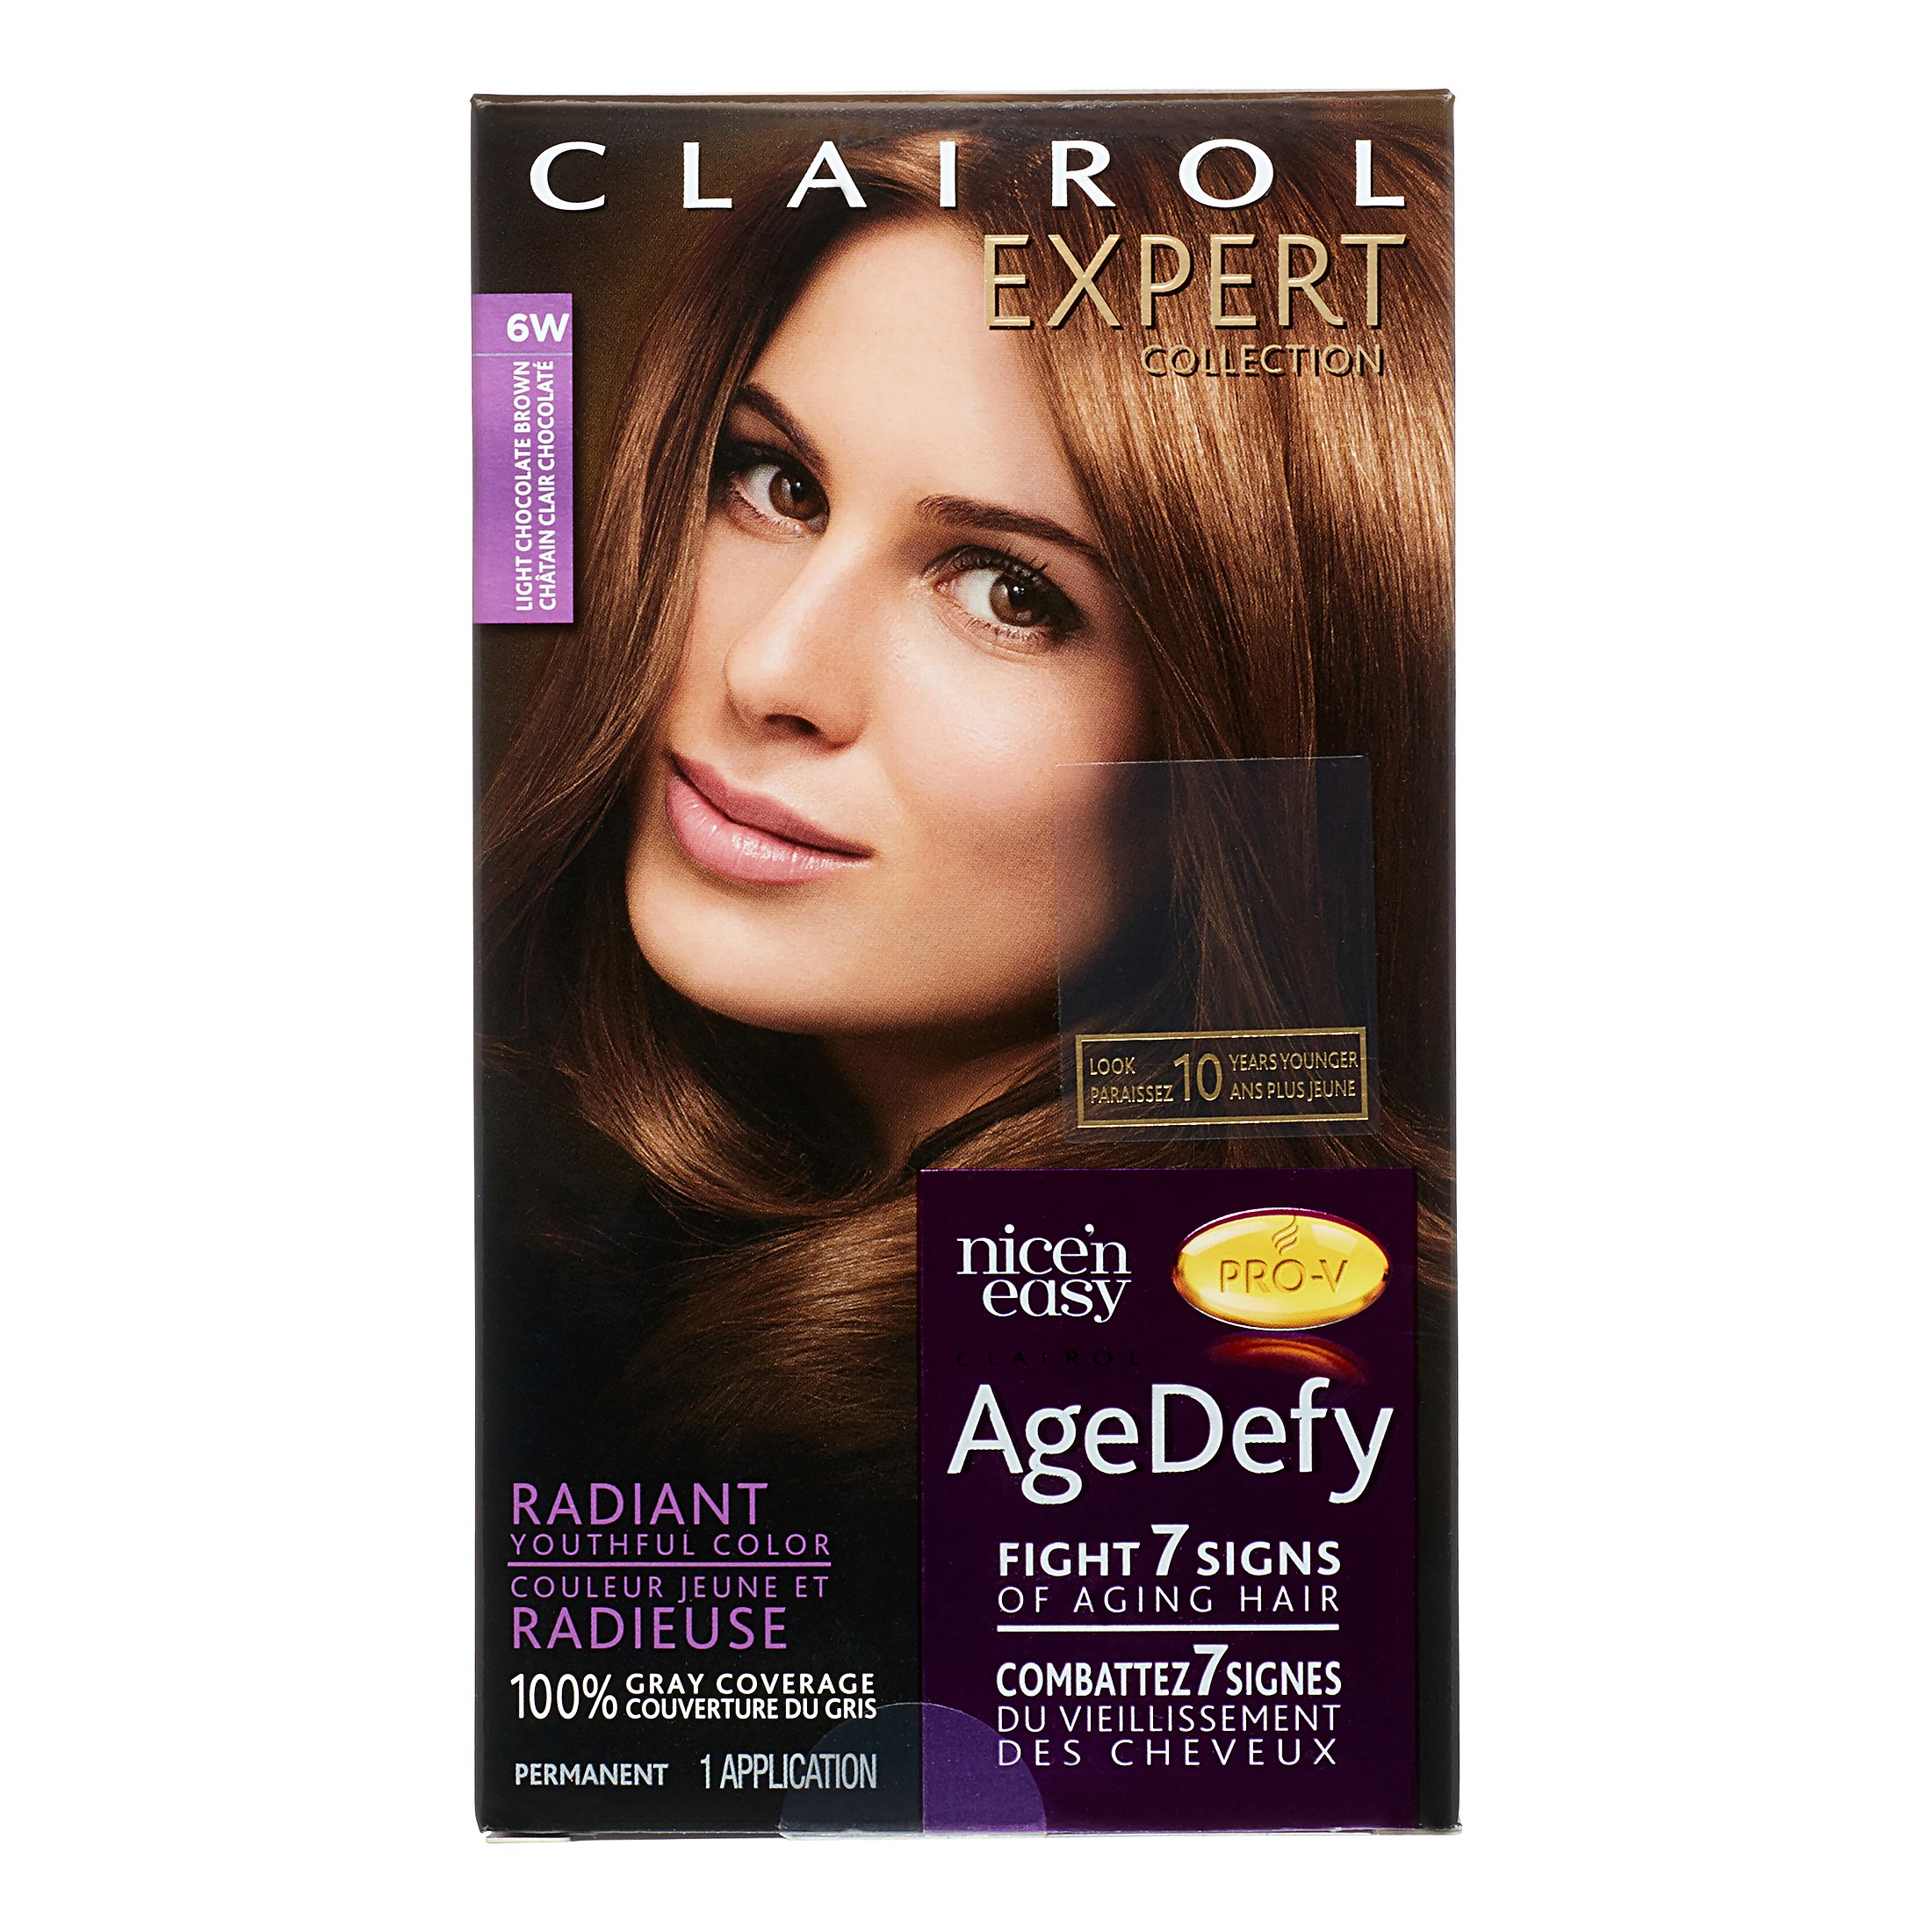 Clairol Expert Collection Age Defy Permanent Hair Color 6w Light